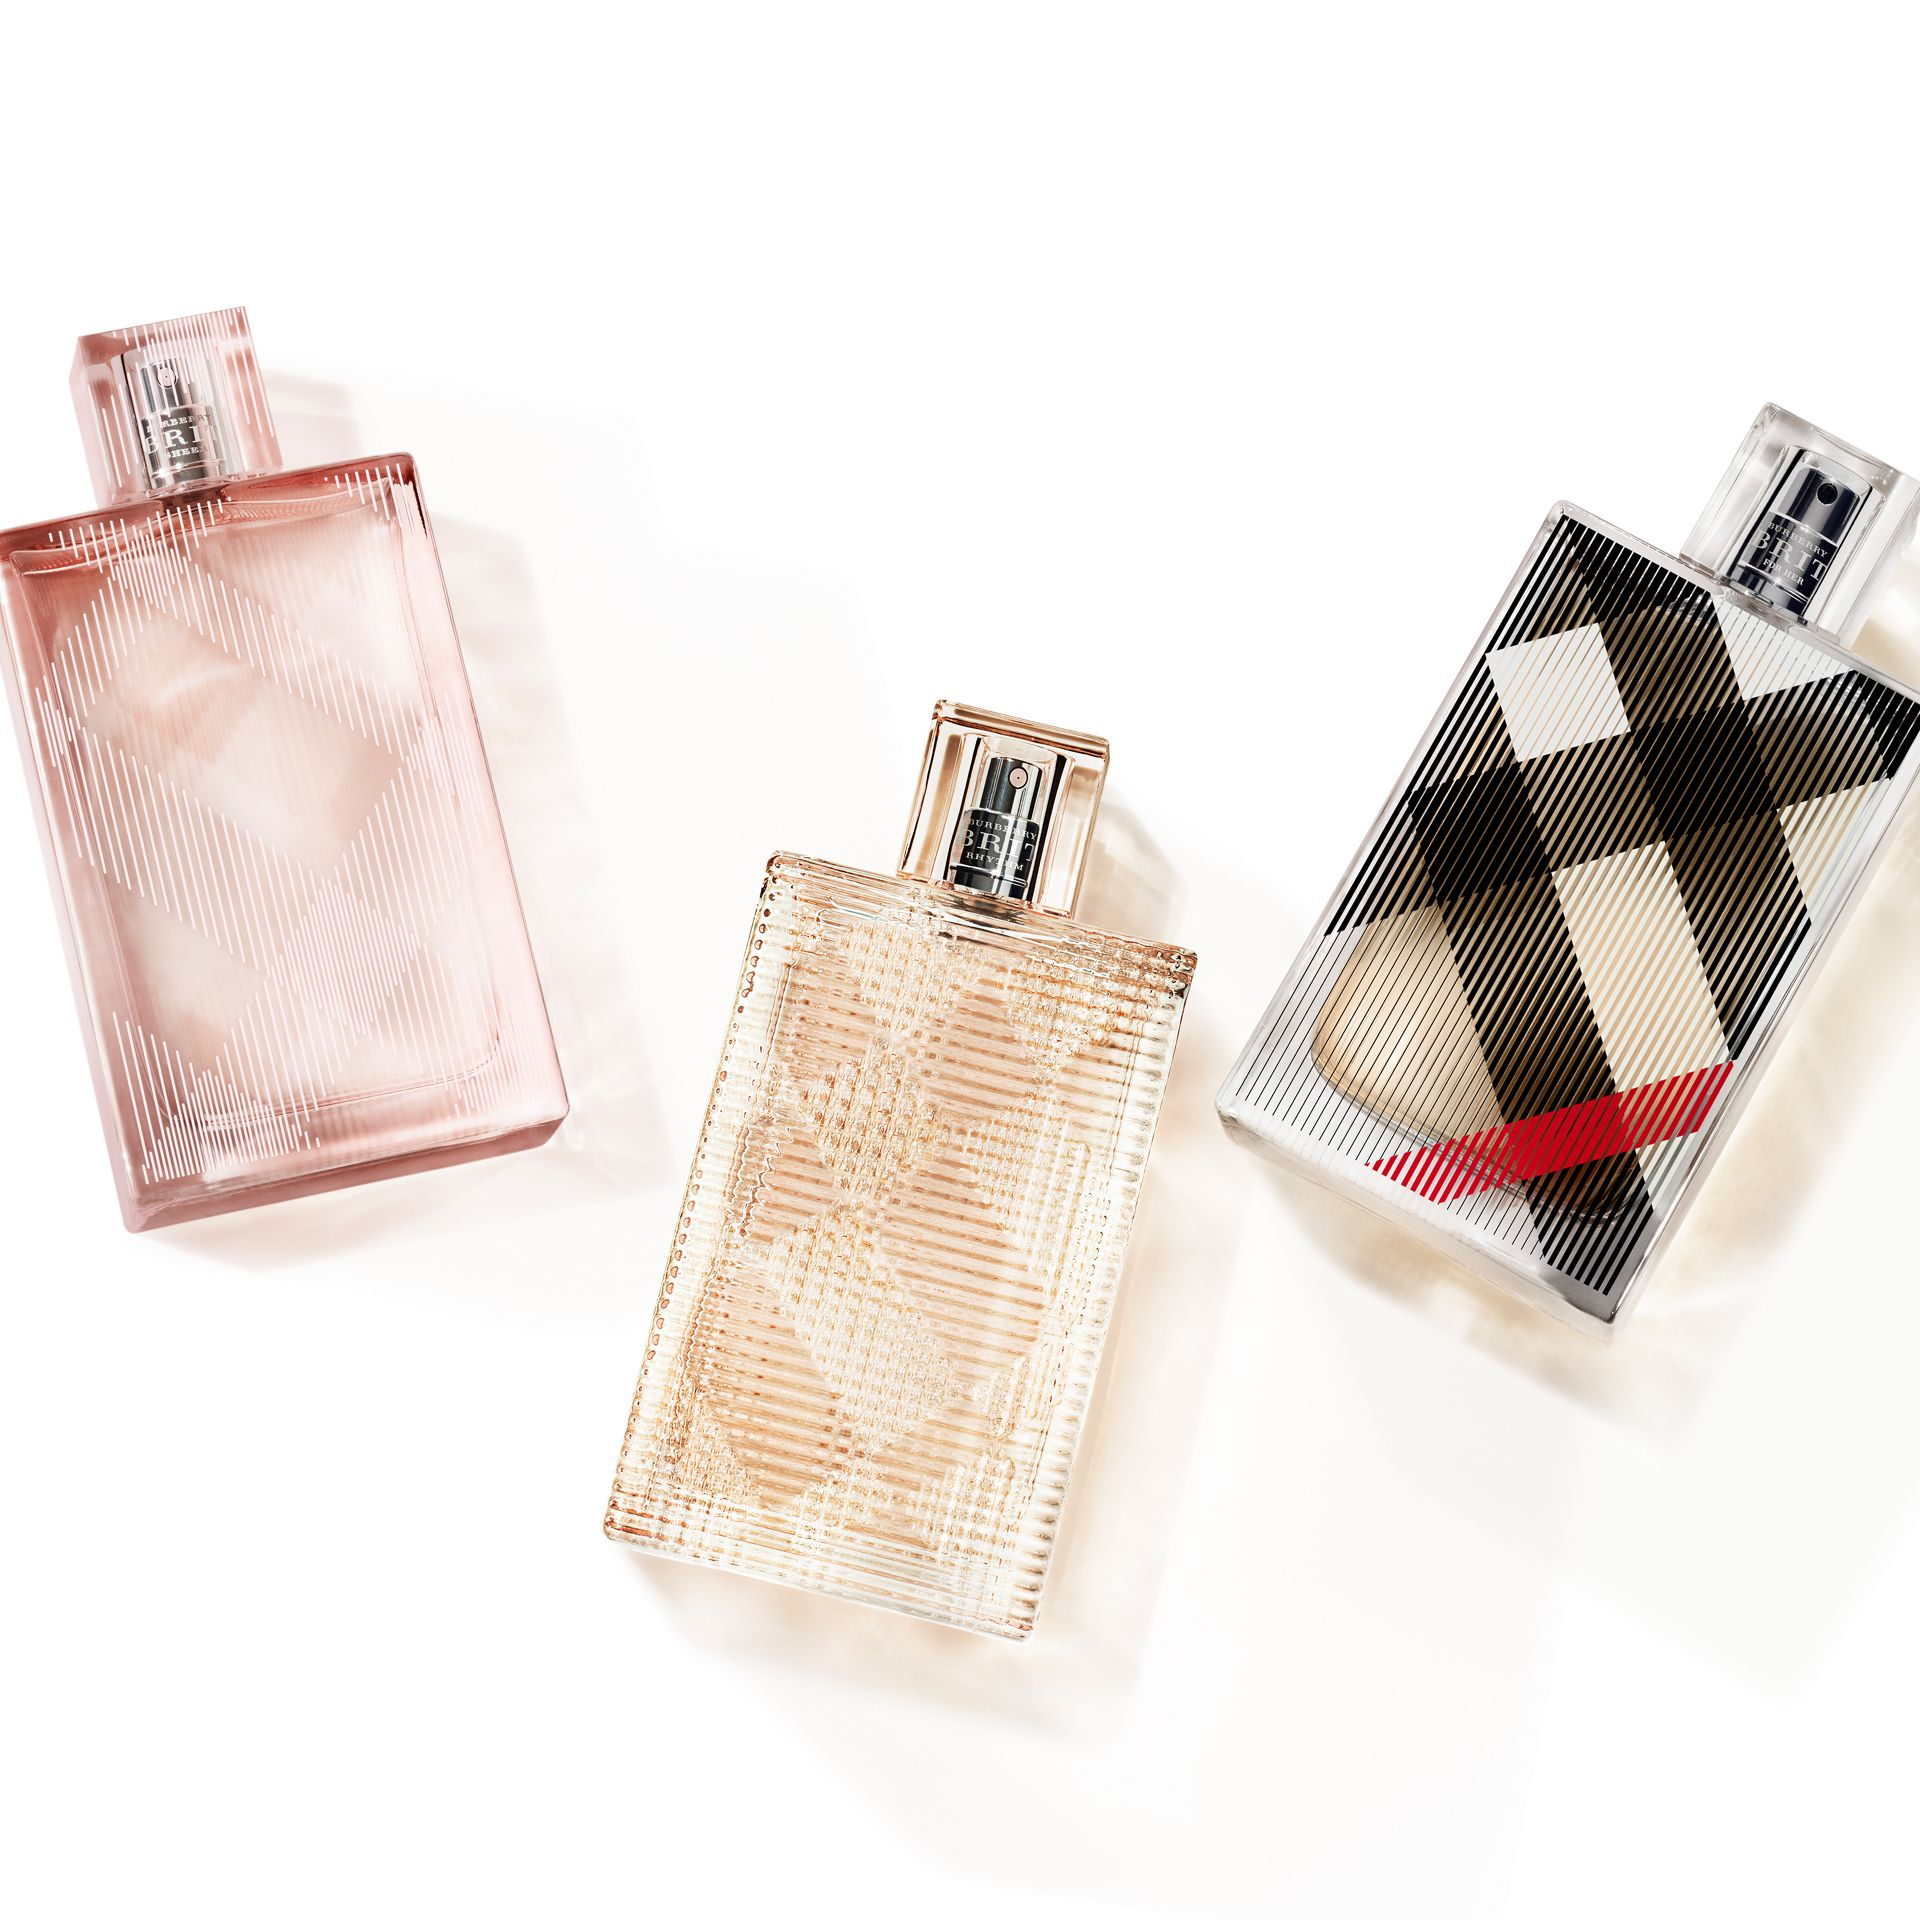 Eau de Toilette Burberry Brit Sheer 50 ml - photo de la galerie 3